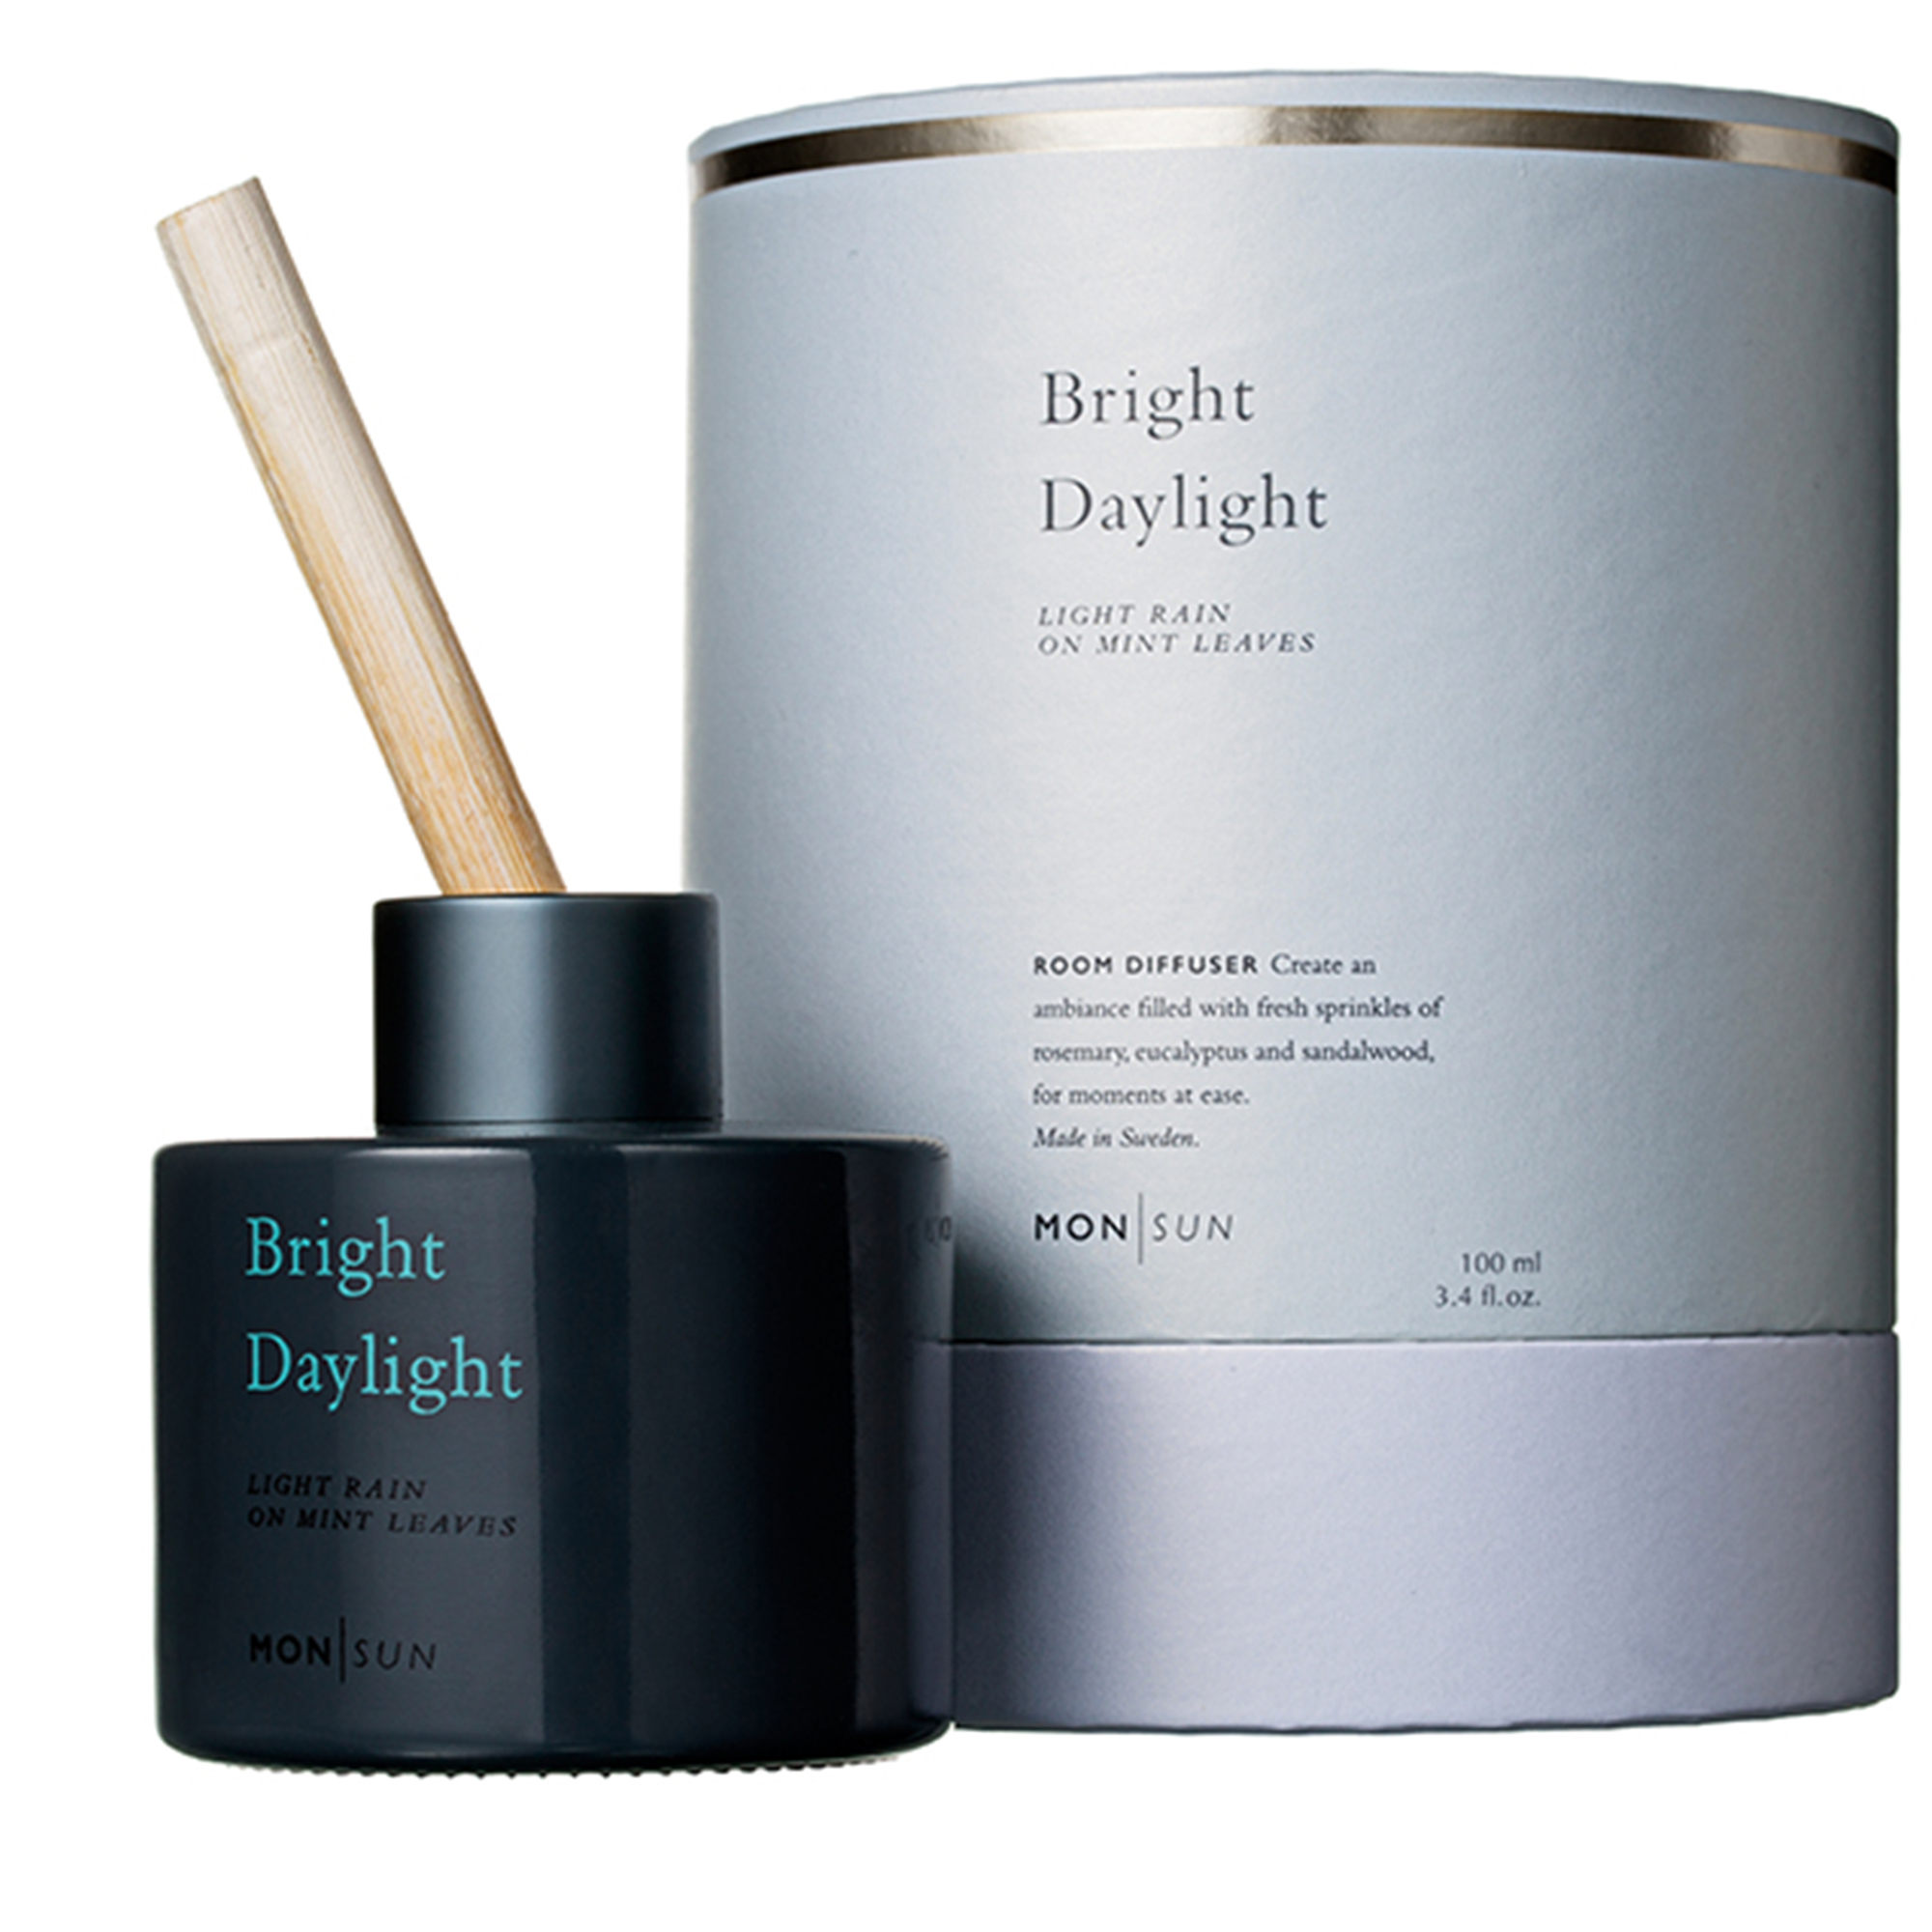 Bright daylight detox & Antioxidant Room Diffuser